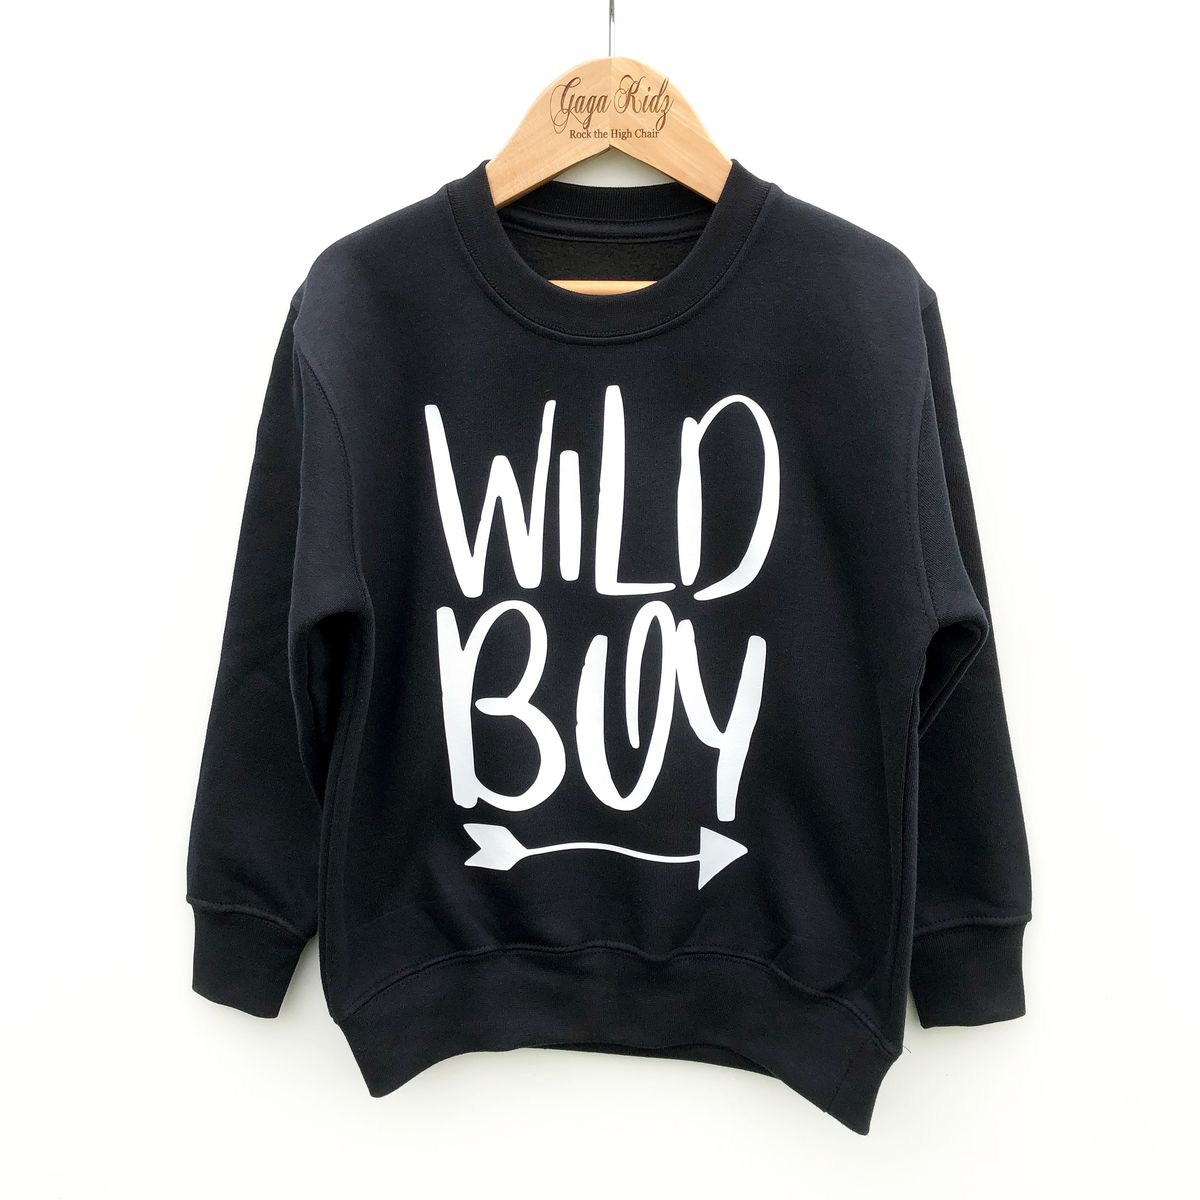 Wild Boy Sweatshirt - product images  of